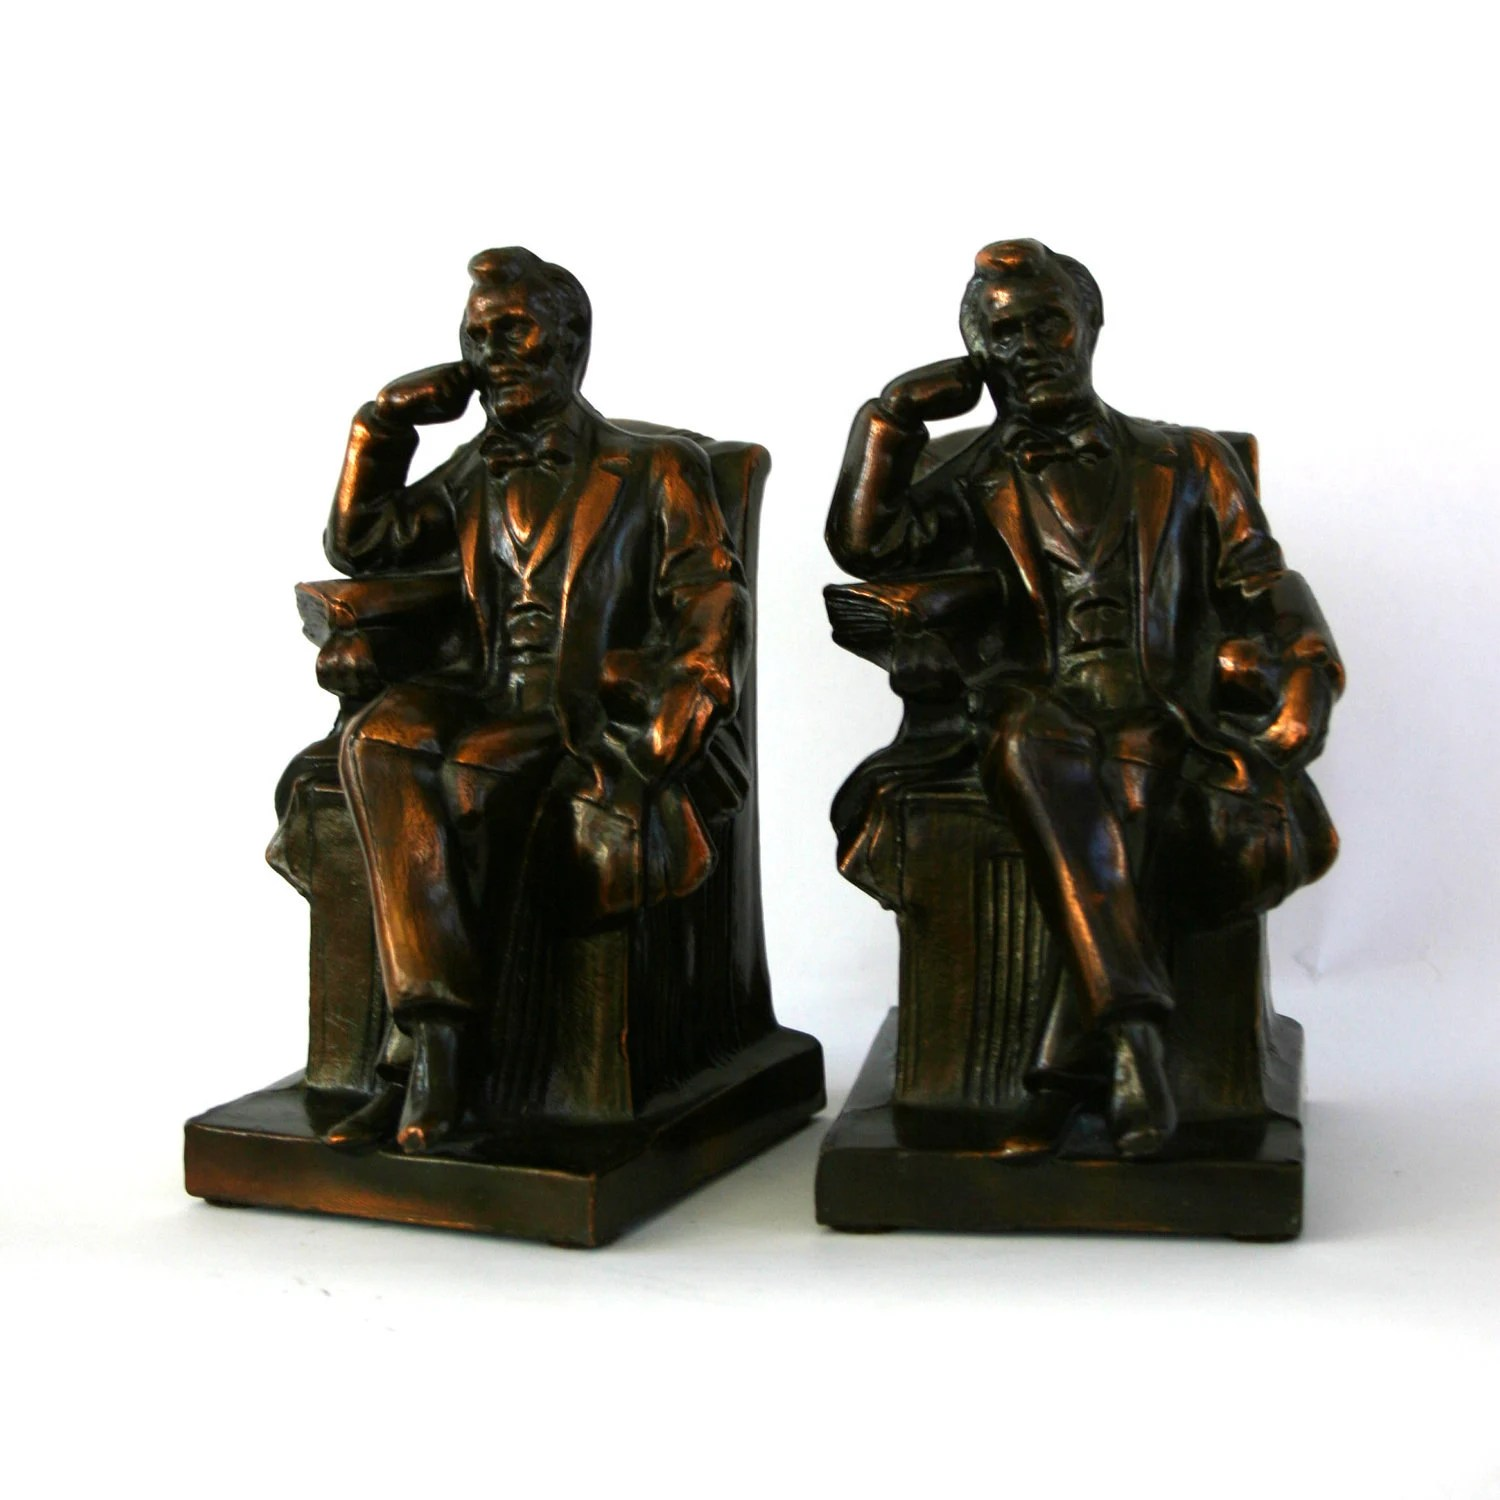 blue metal folding chairs wedding hire london vintage abraham lincoln bookends. bronze copper finish. home